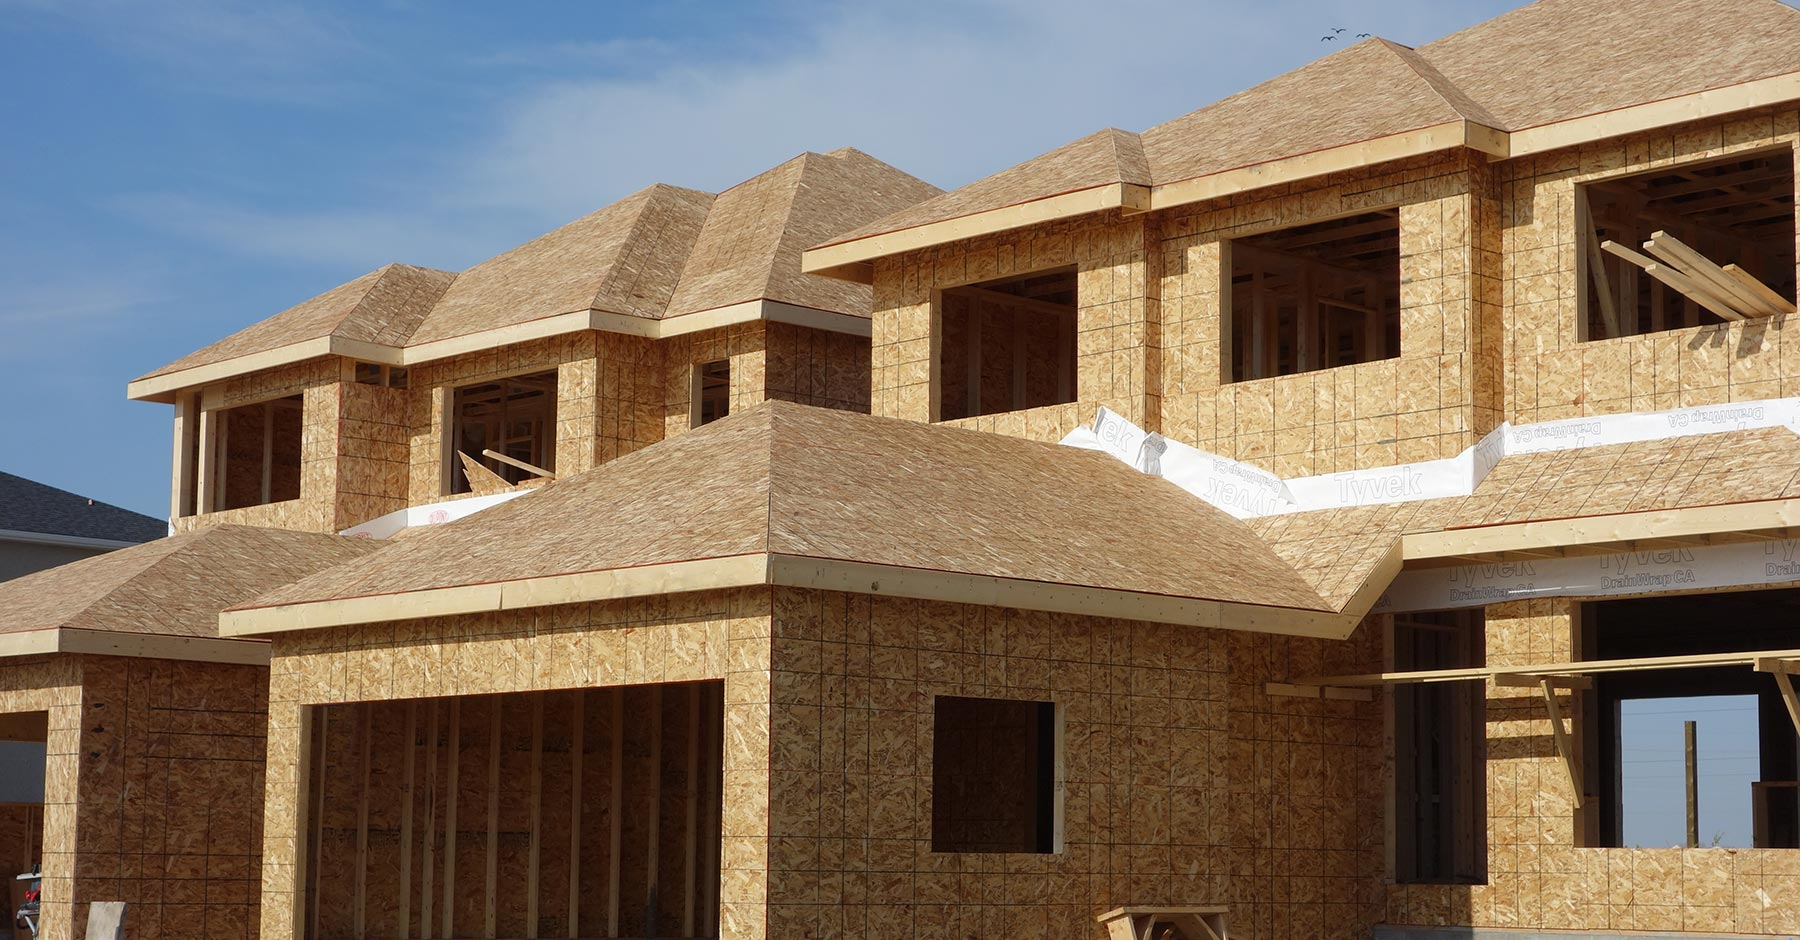 Sage Creek - Homes under construction